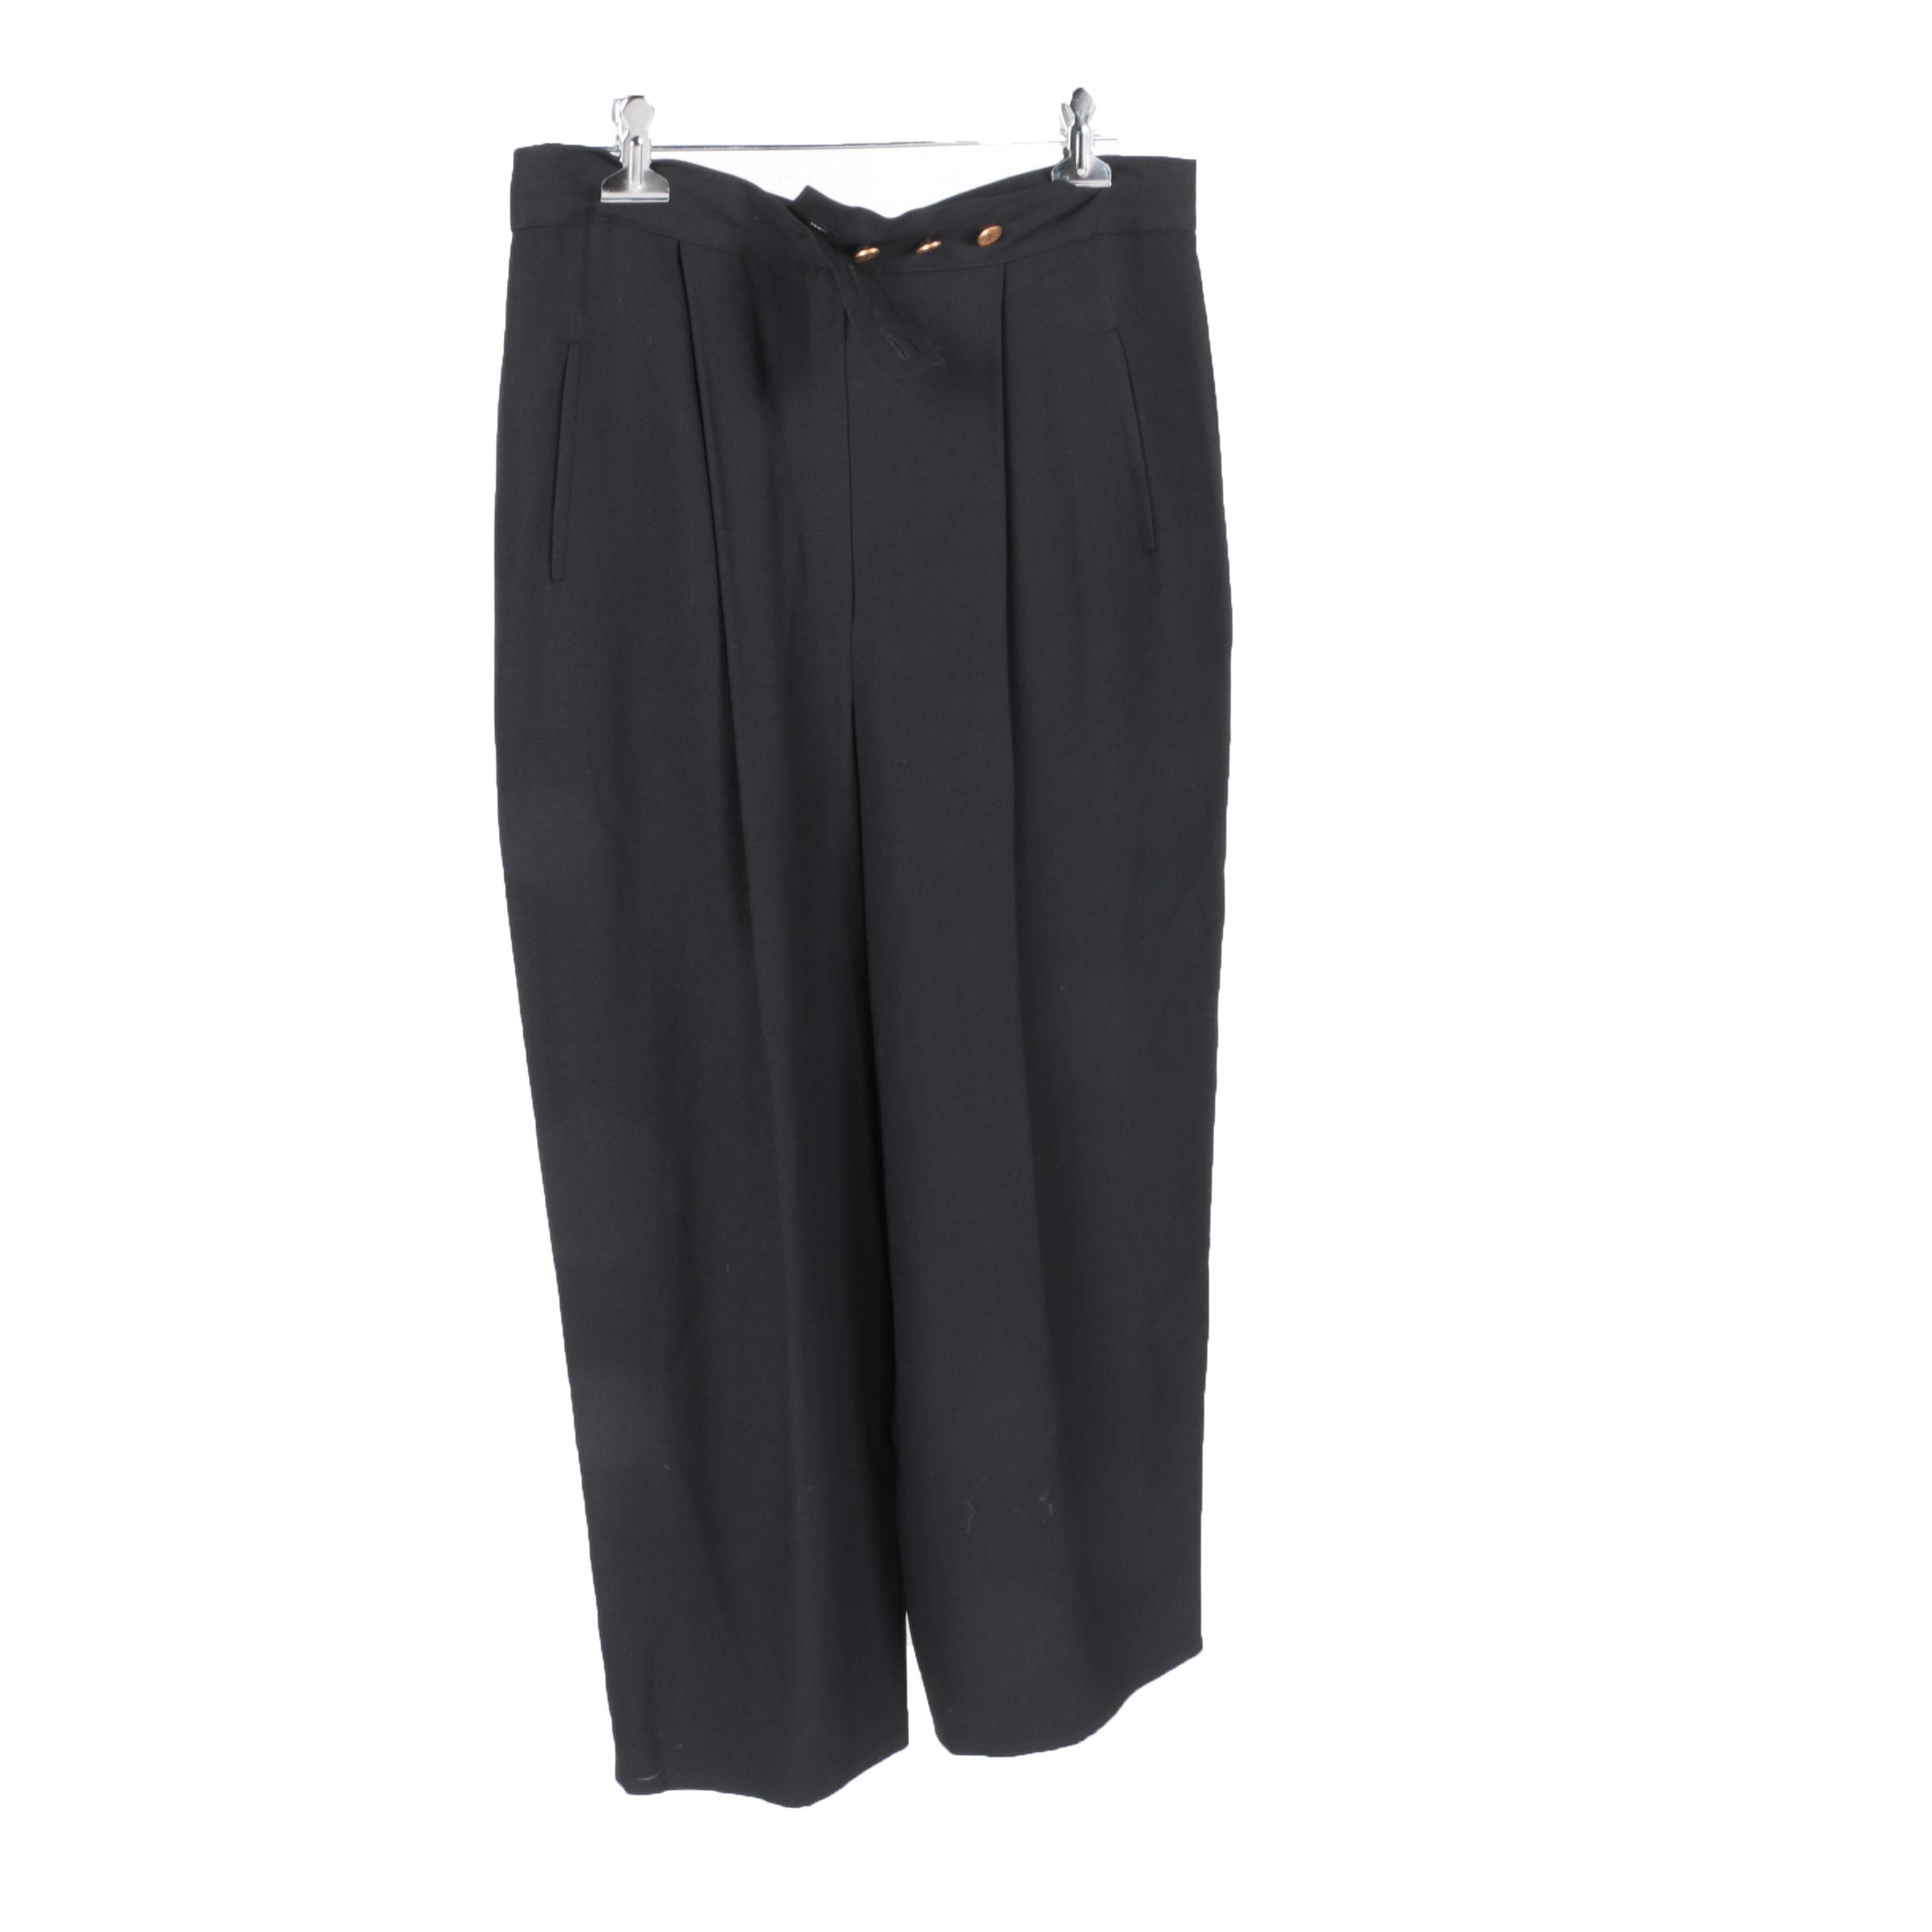 Sonia Rykiel Pleated Pants